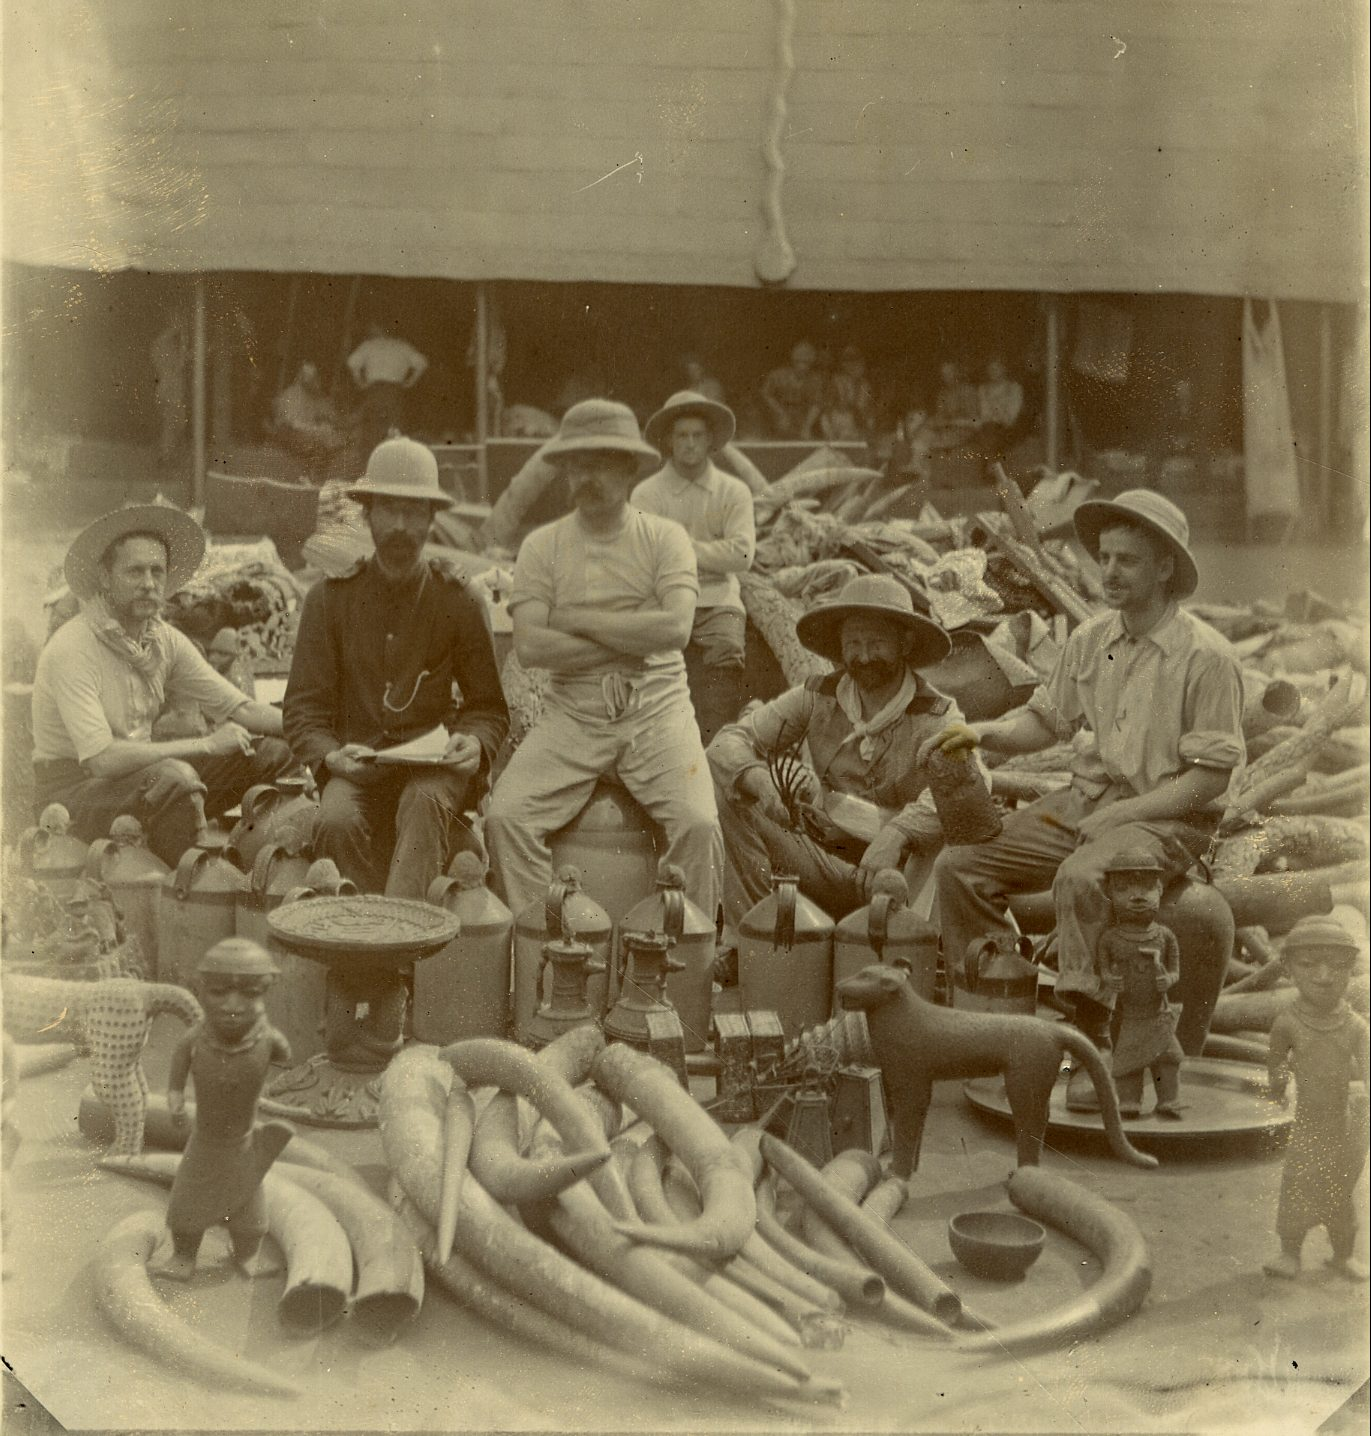 Photos from Benin Bronzes Loot in 1897 from the British Museum.